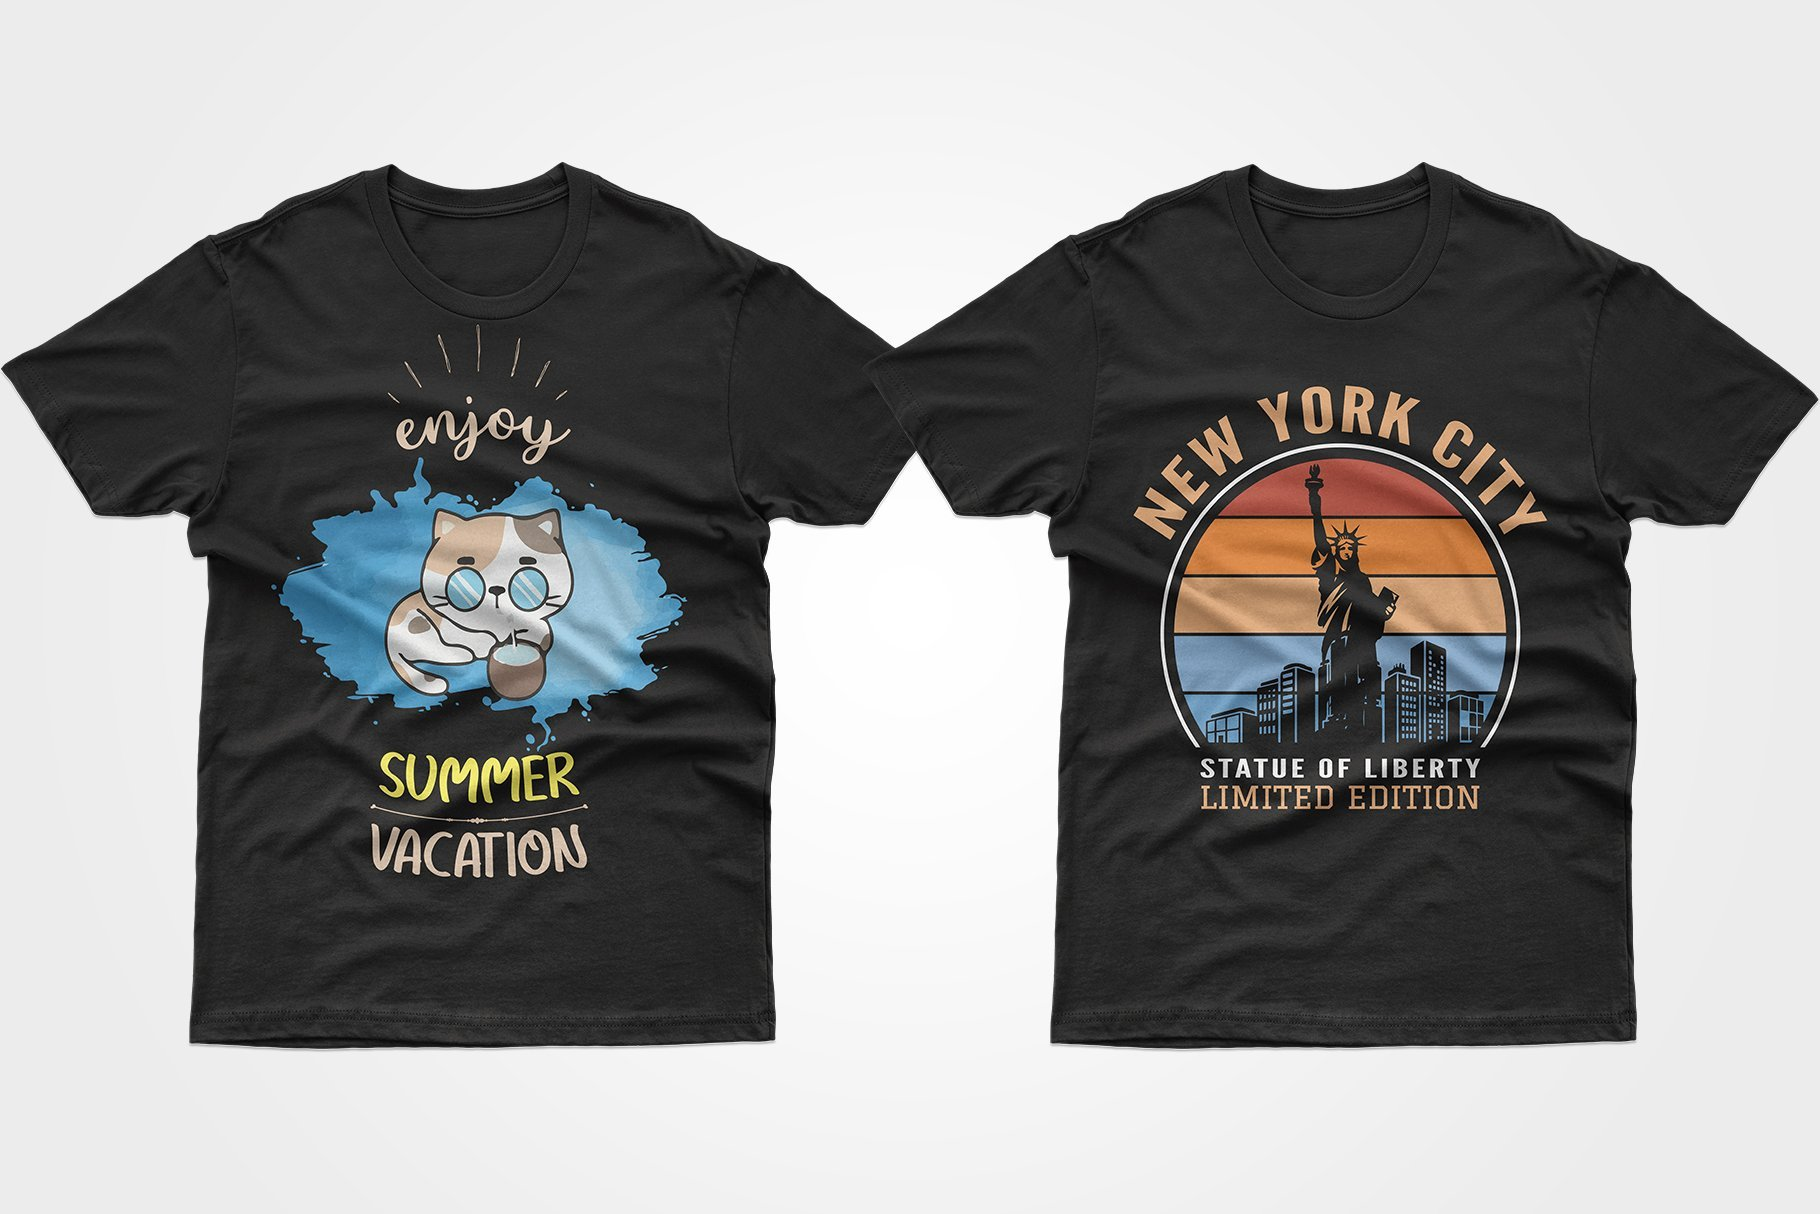 Two black T-shirts - one with a kitten, the other with the Statue of Liberty.